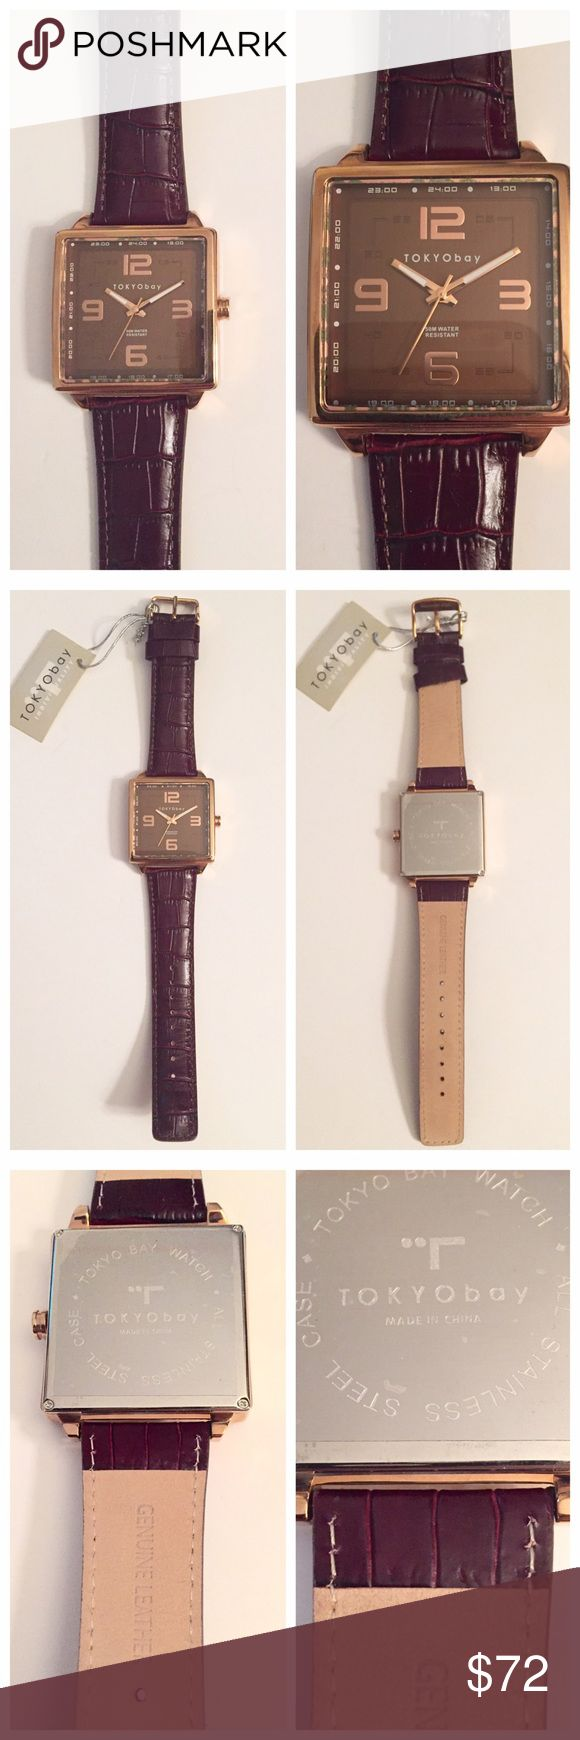 """NWT Tokyo Bay Men's Leather watch, $160 Retail Tokyo Bay Men's Watch, NWT, Leather, Analog, Quartz (battery), Needs new battery otherwise giftable condition. Face is 1.75"""" x 1.75"""". Total length is 10"""". Retails for $160 Tokyo Bay Accessories Watches"""